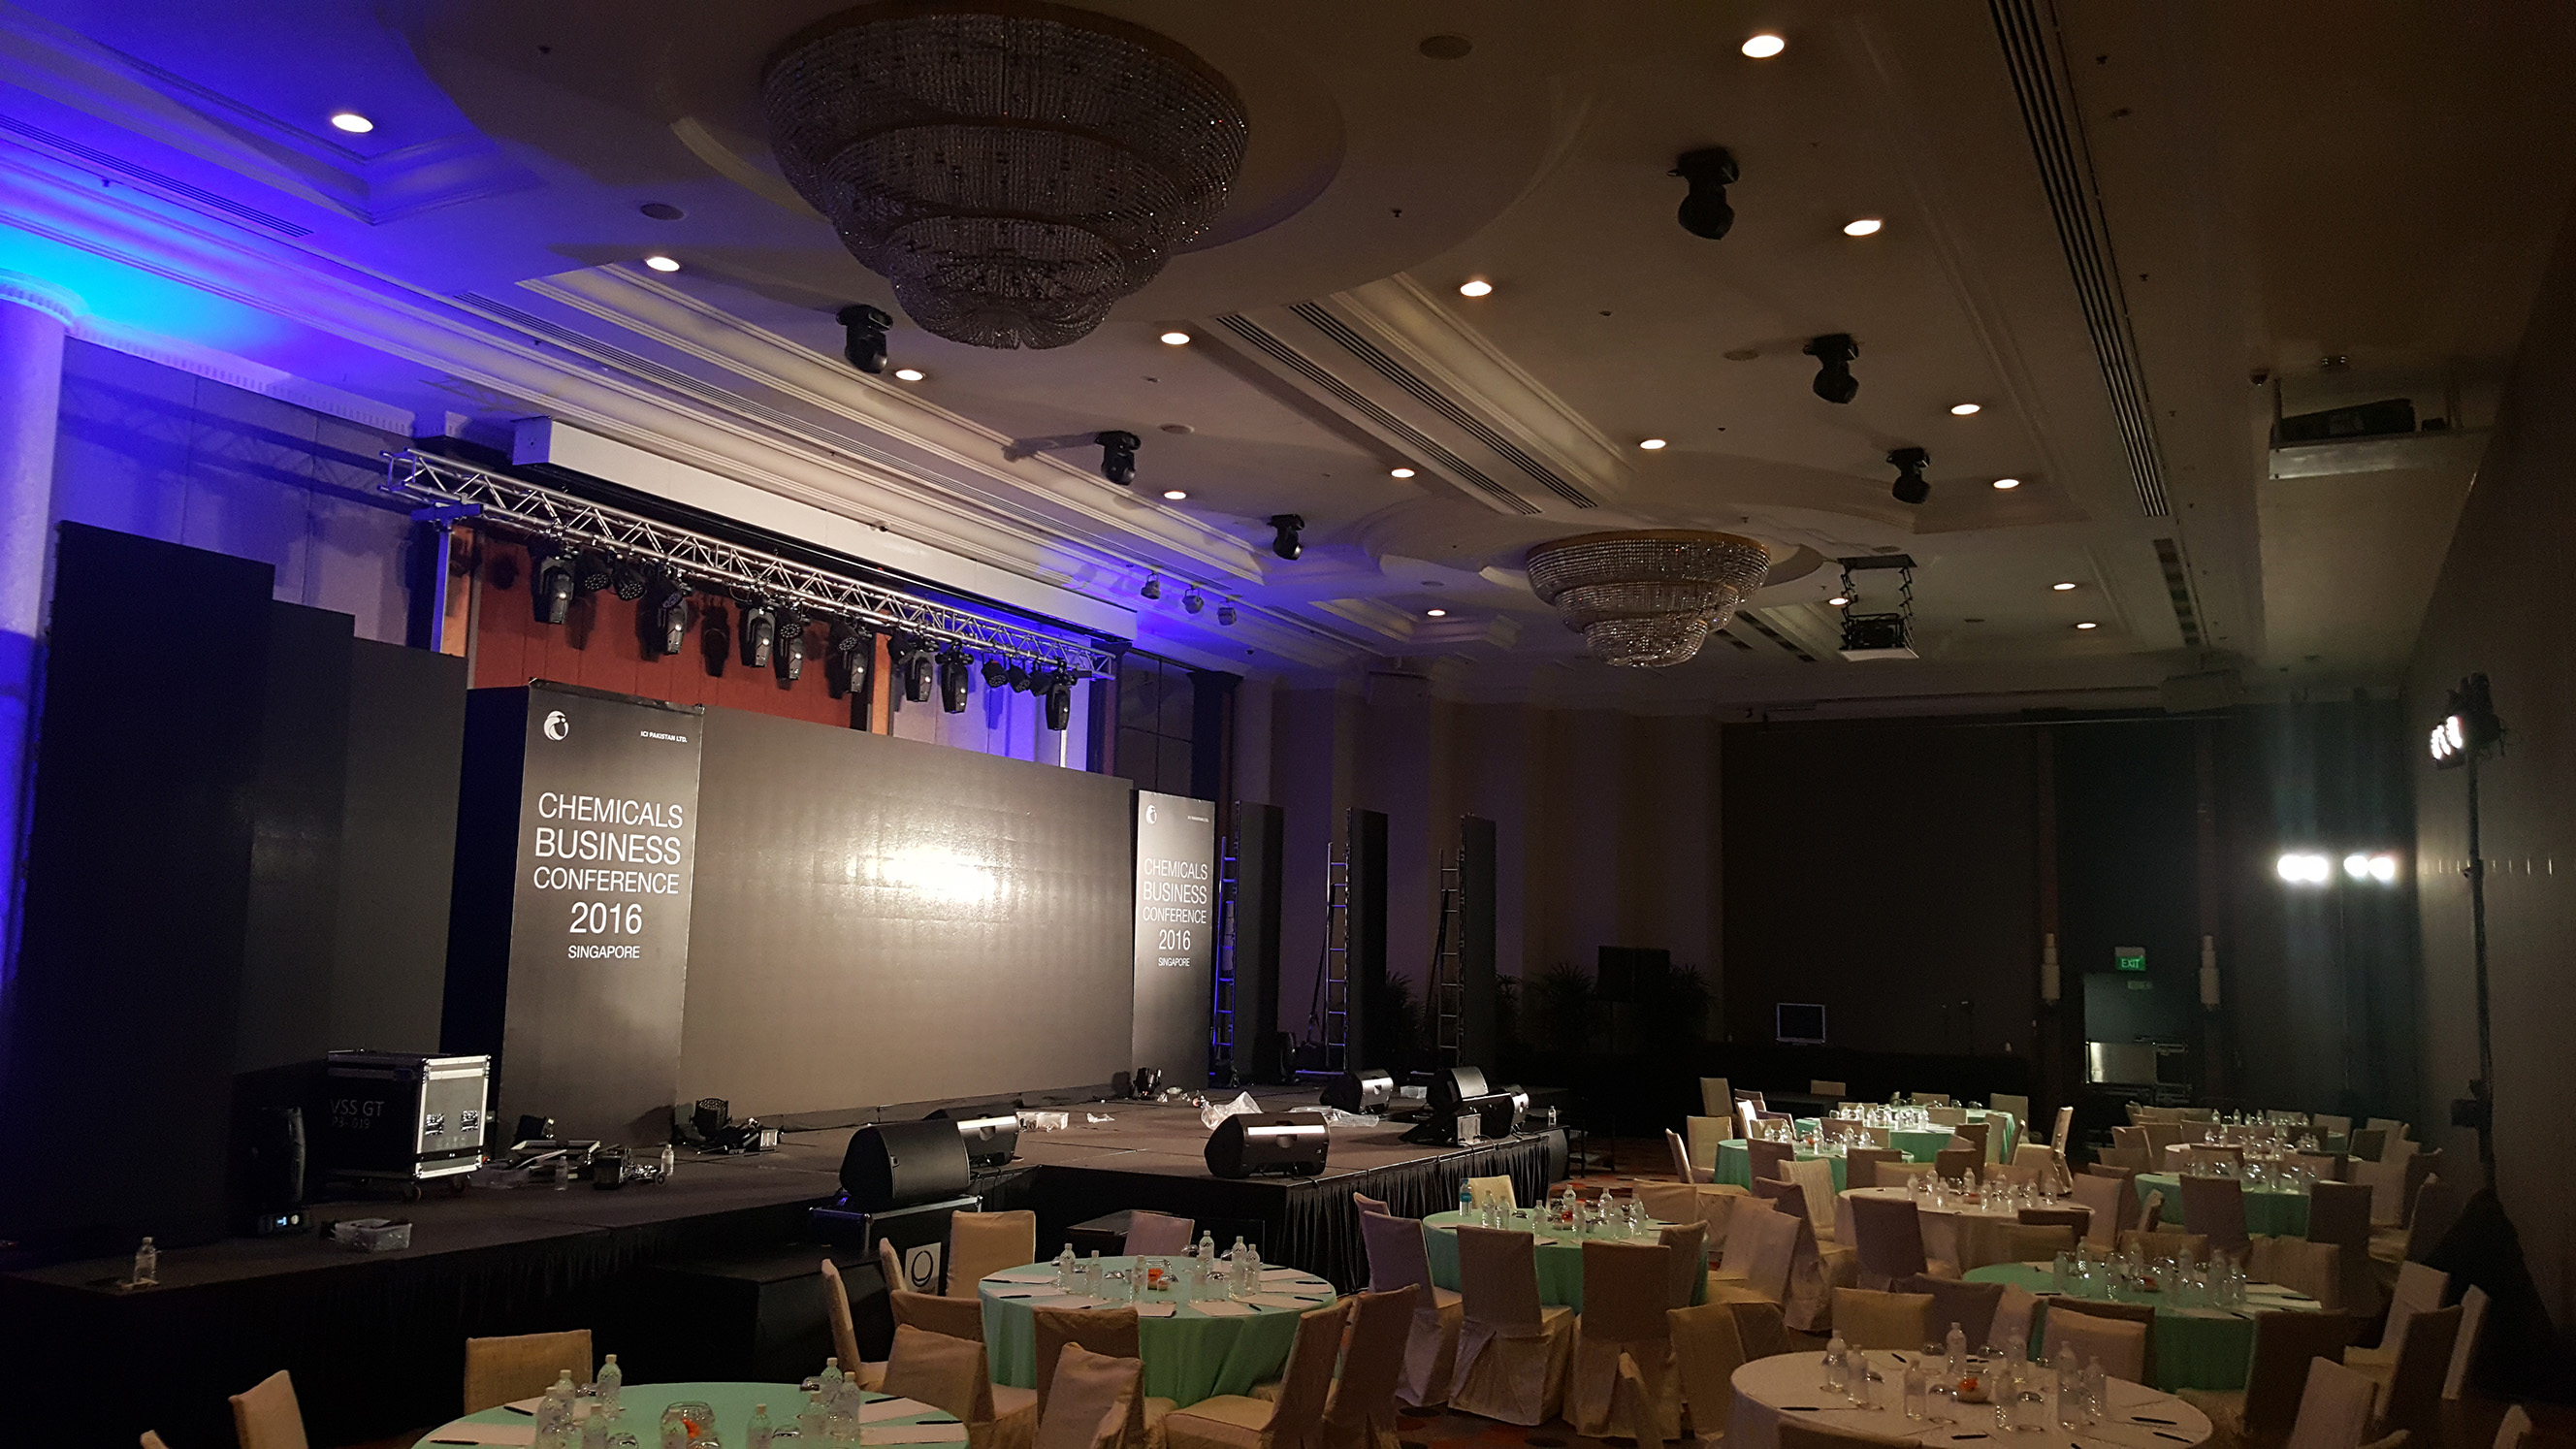 Event Led Wall and Lightings